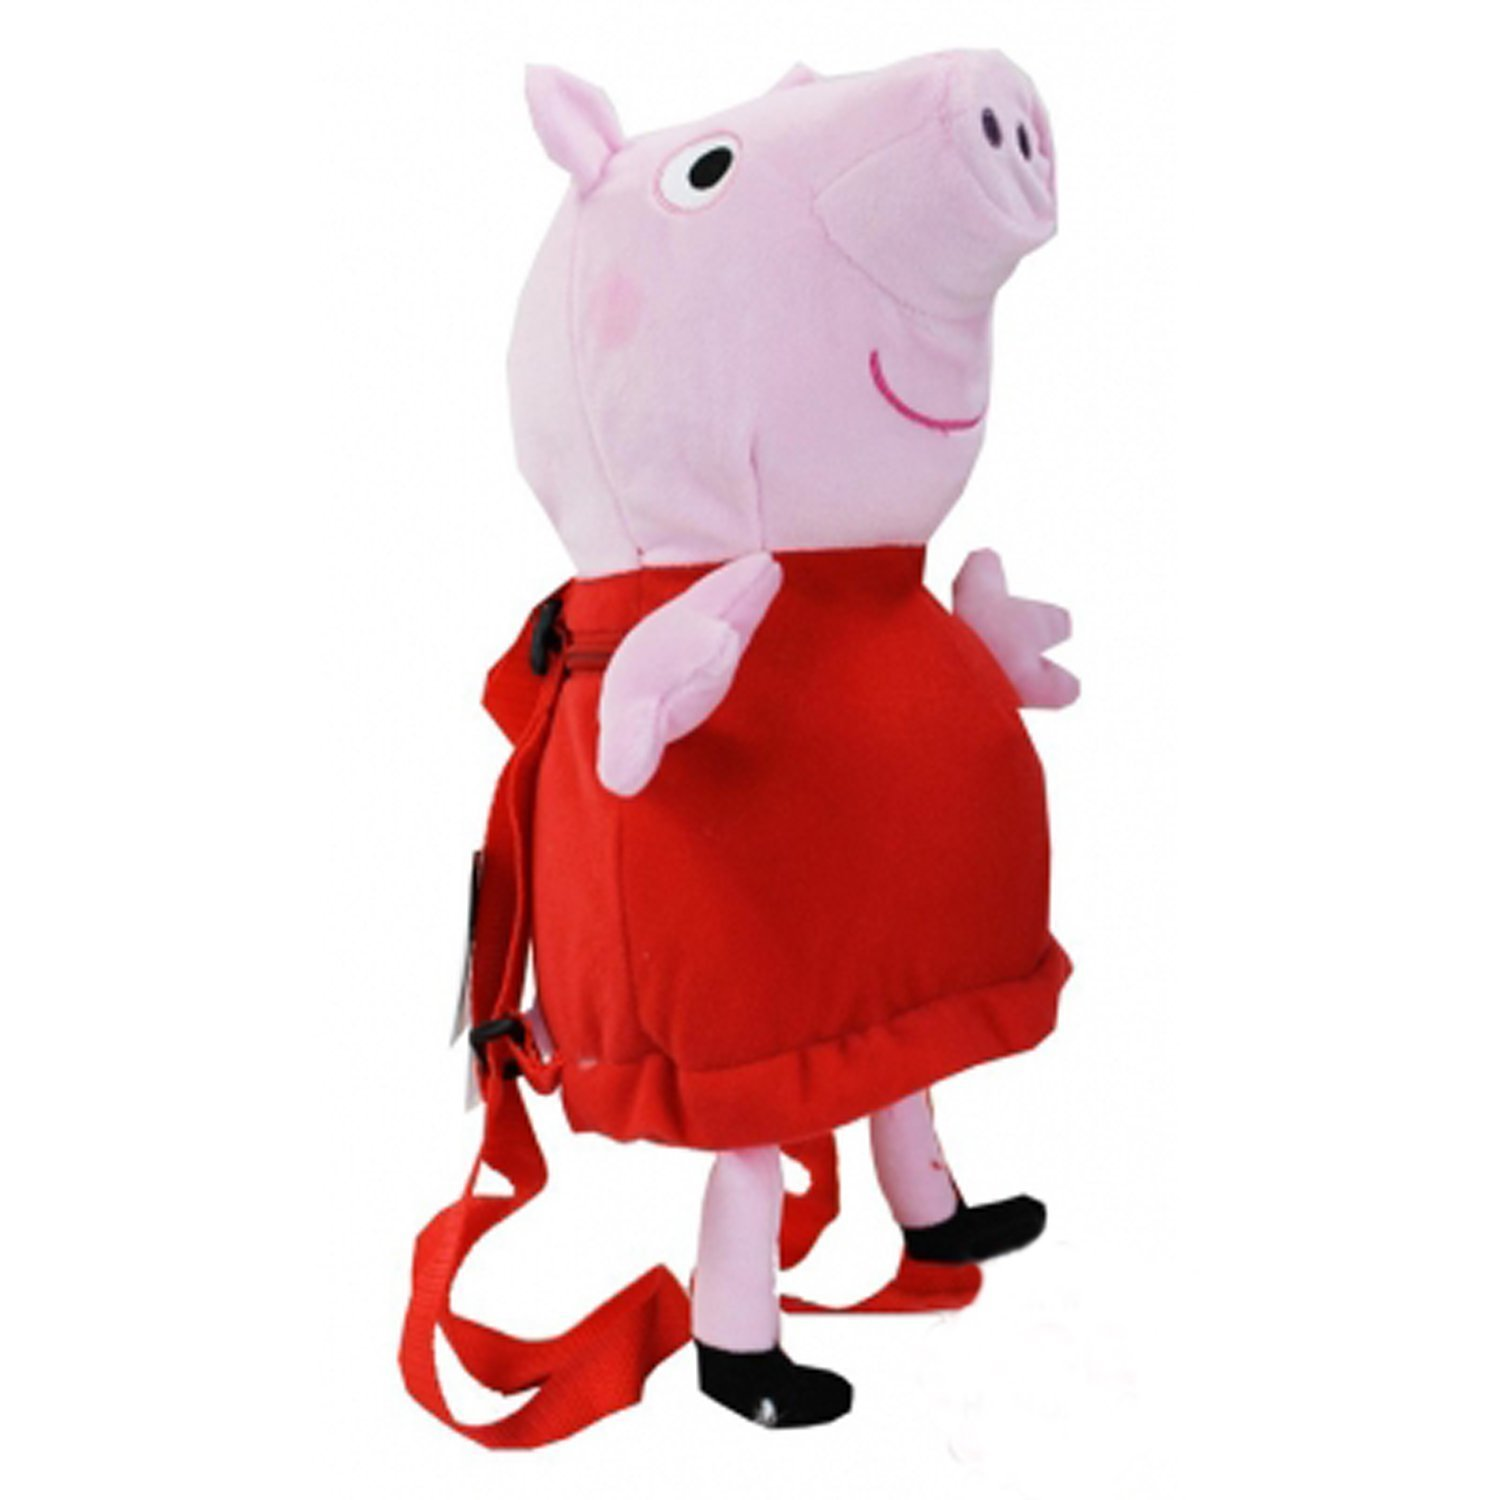 "Plush Backpack - Peppa Pig - 12"" Soft Doll Toys New Licensed 105383"